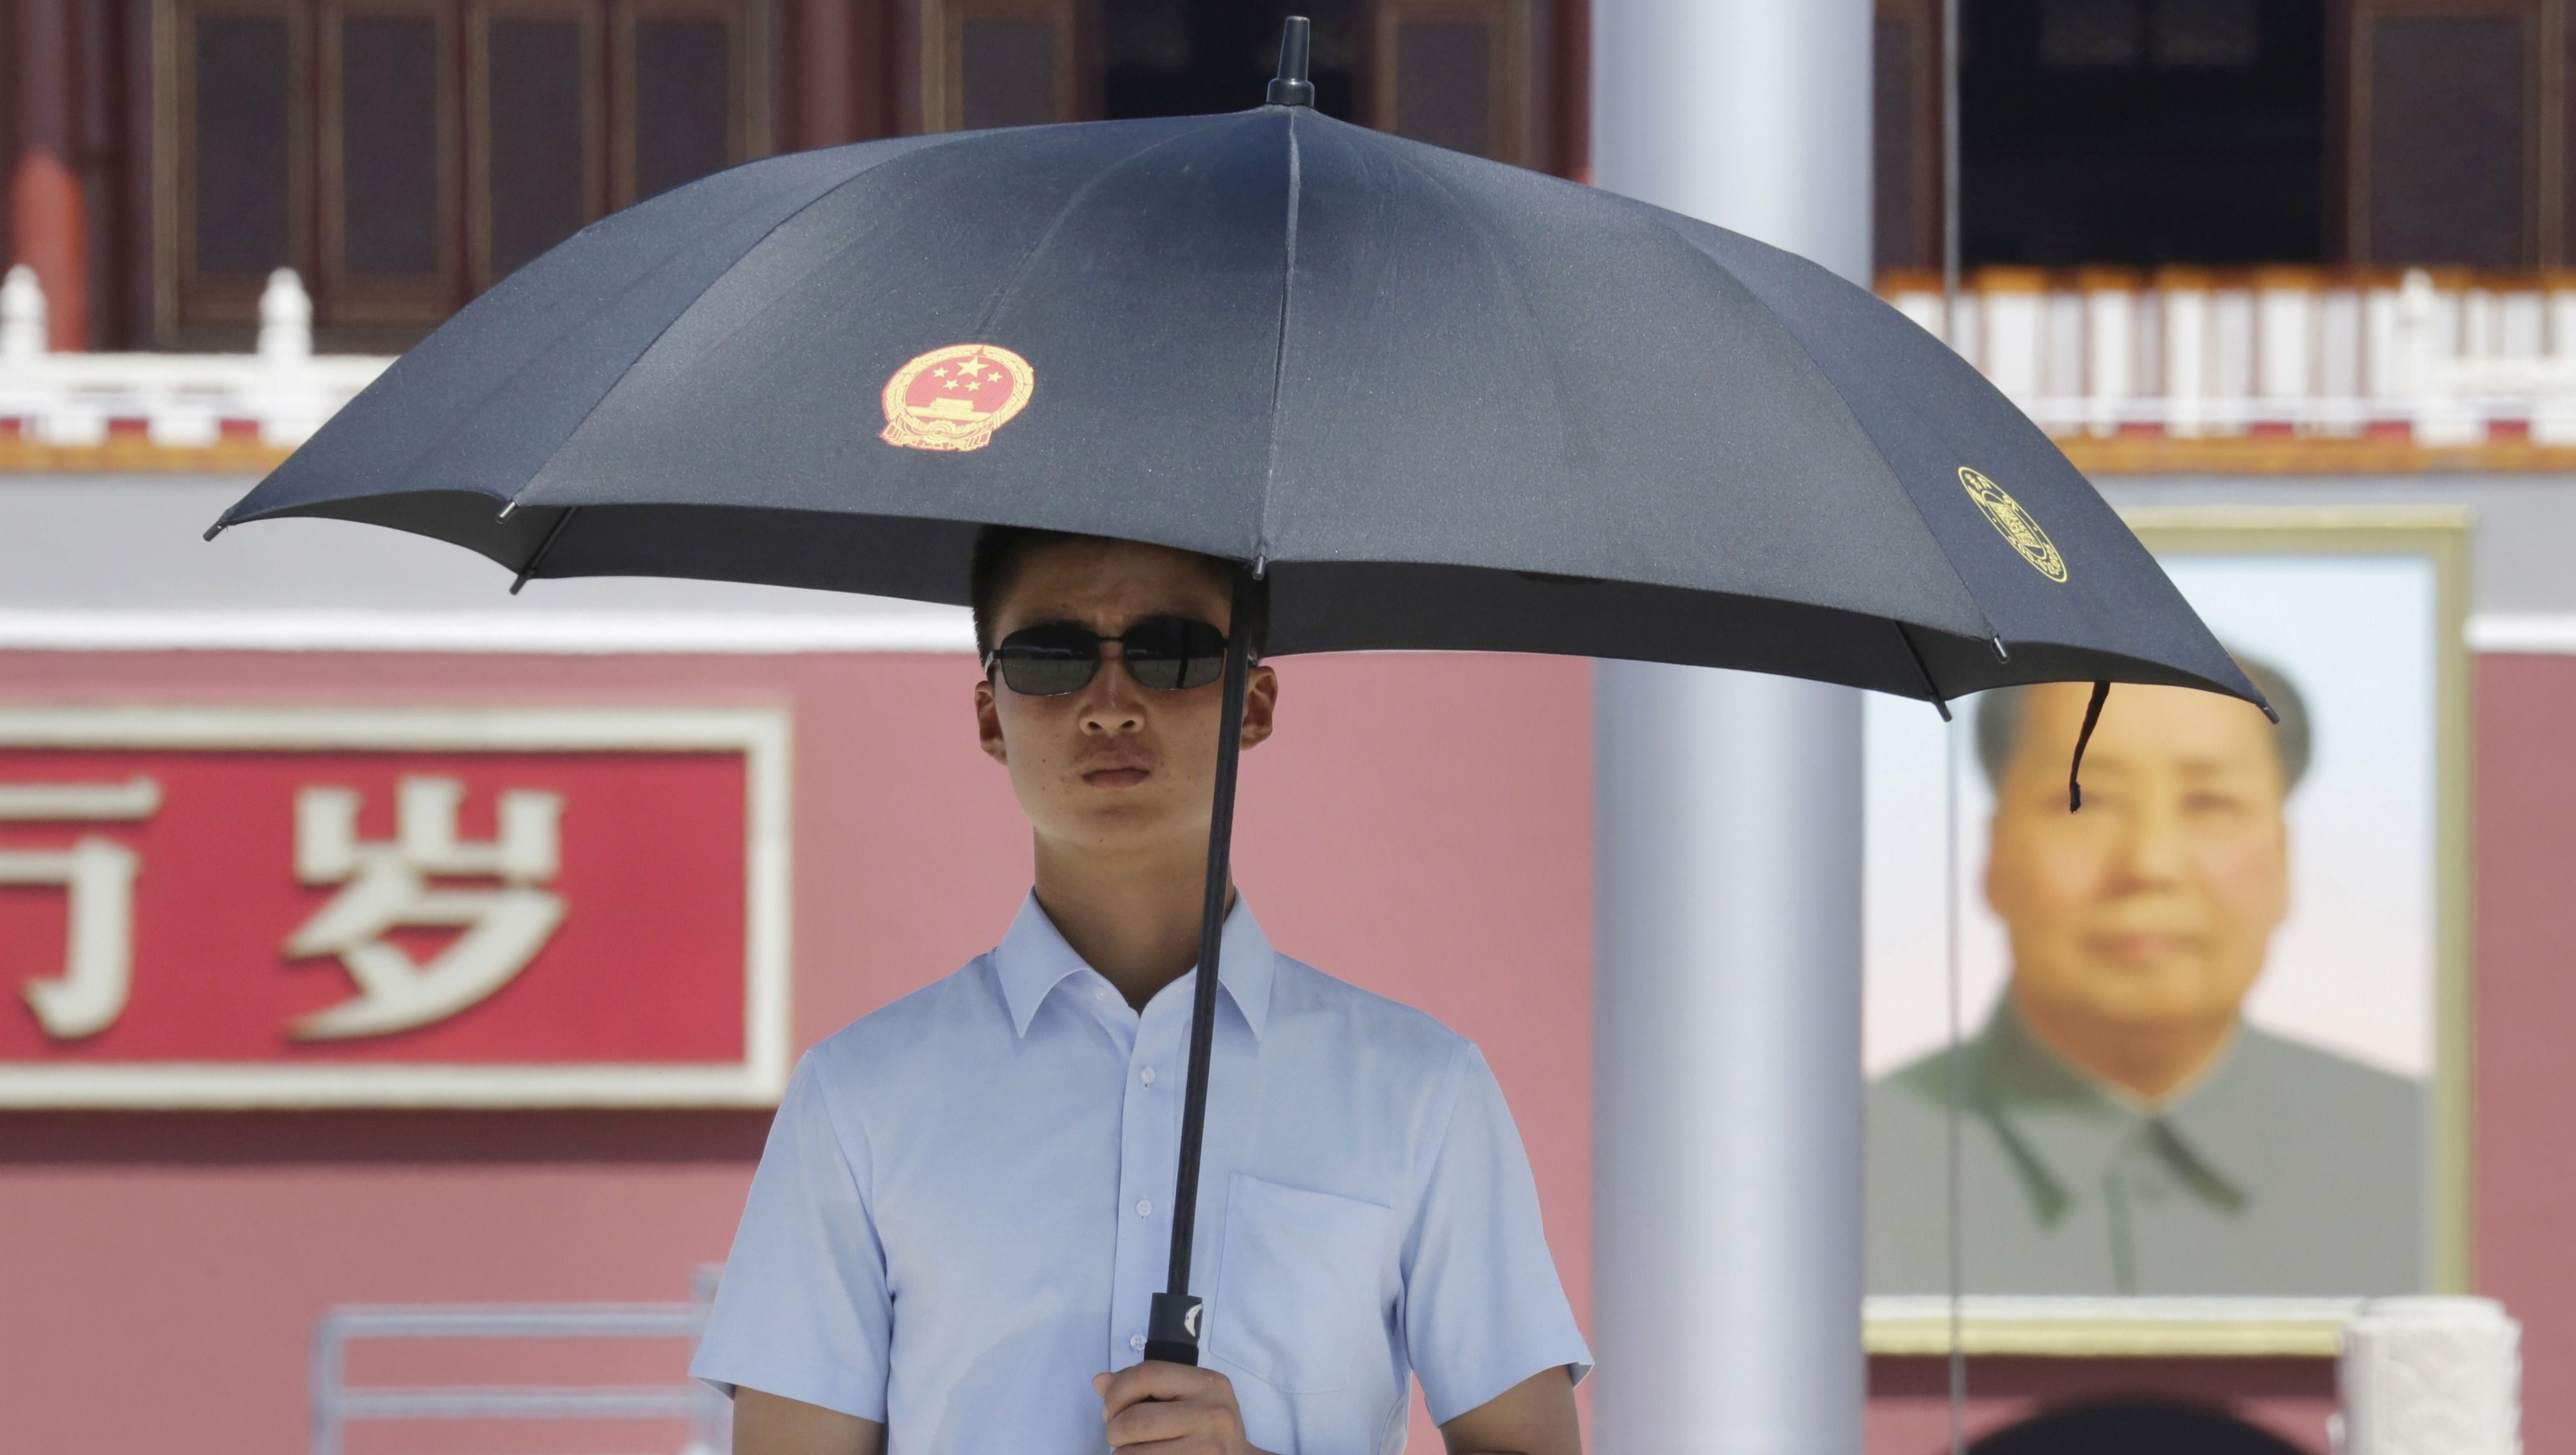 A paramilitary police officer in plain-clothes holding an umbrella keeps watch on Beijing's Tiananmen Square, August 27, 2015. Major Western leaders will not attend a military parade in China next week to mark the end of World War Two, leaving President Xi Jinping to stand with leaders and officials from Russia, Sudan, Venezuela and North Korea at his highest-profile event of 2015.